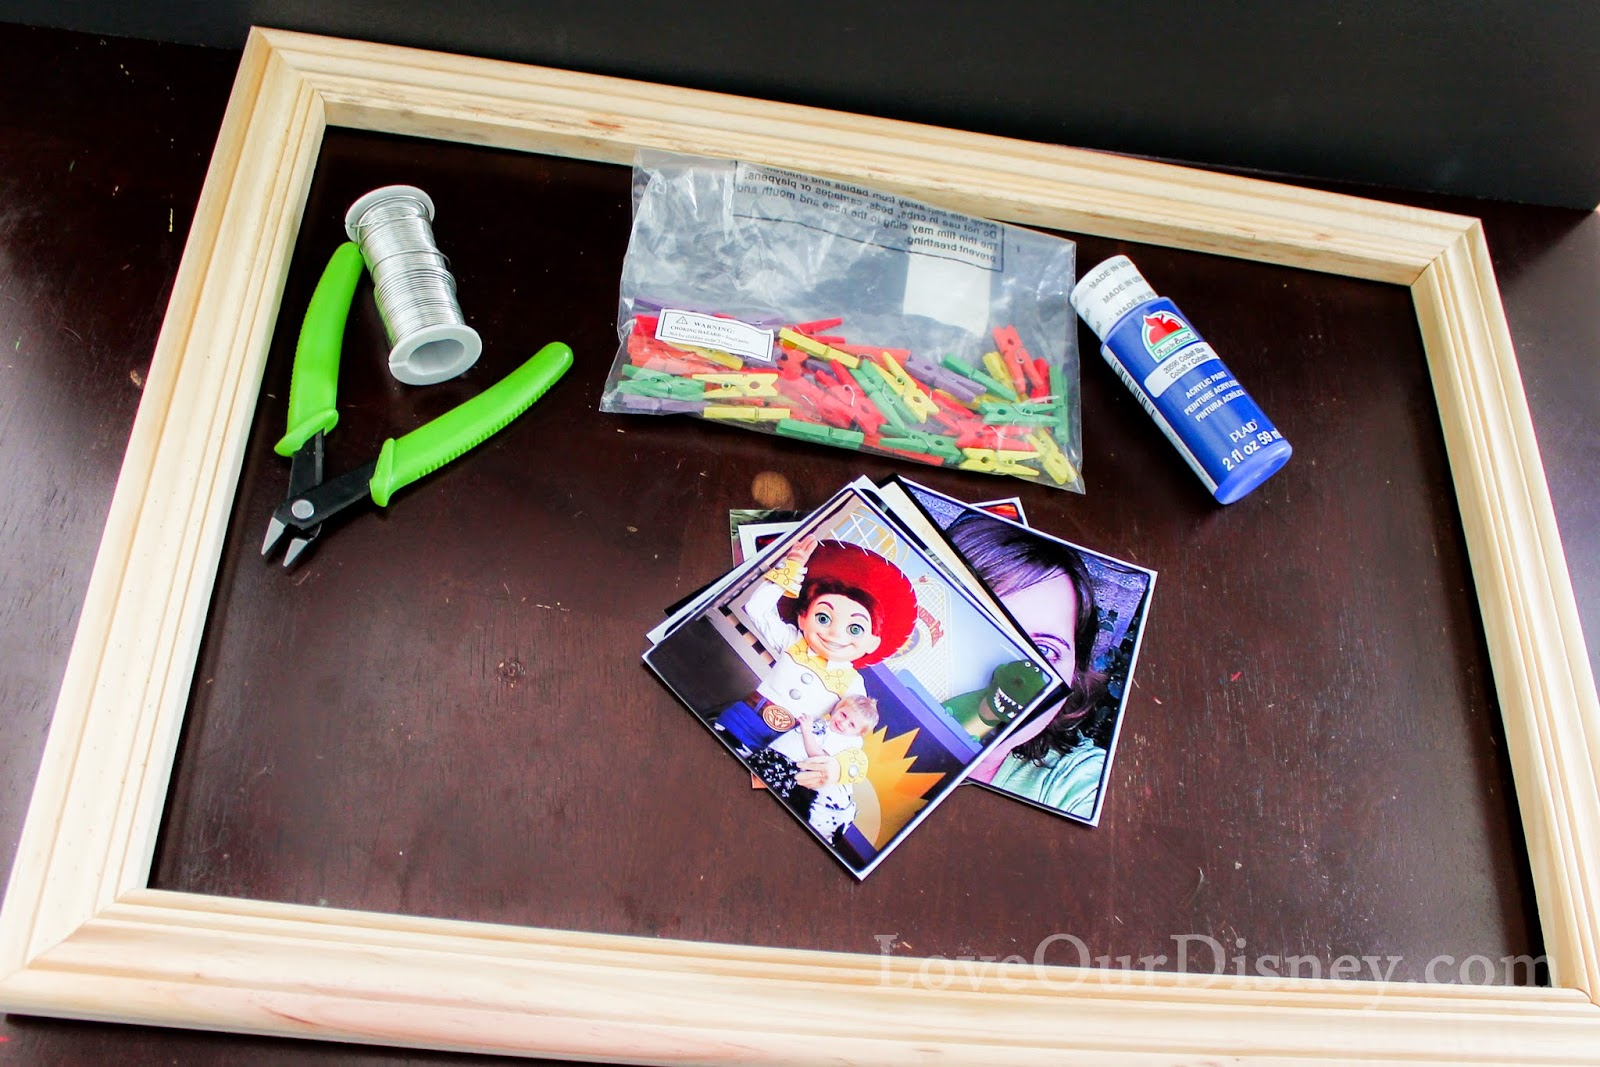 DIY Clothesline Photo Display by LoveOurDisney.com